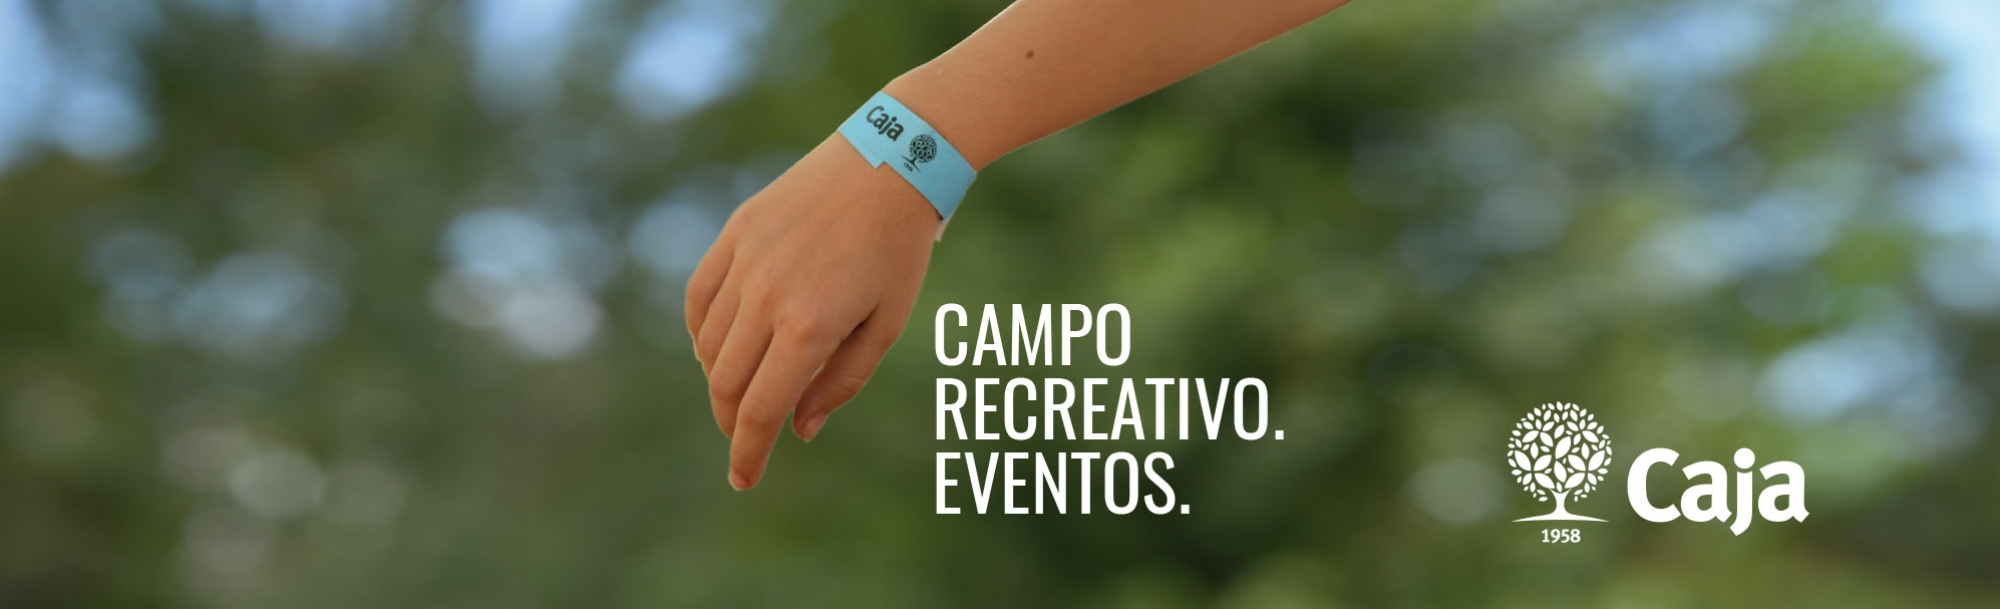 Eventos en el Campo Recreativo